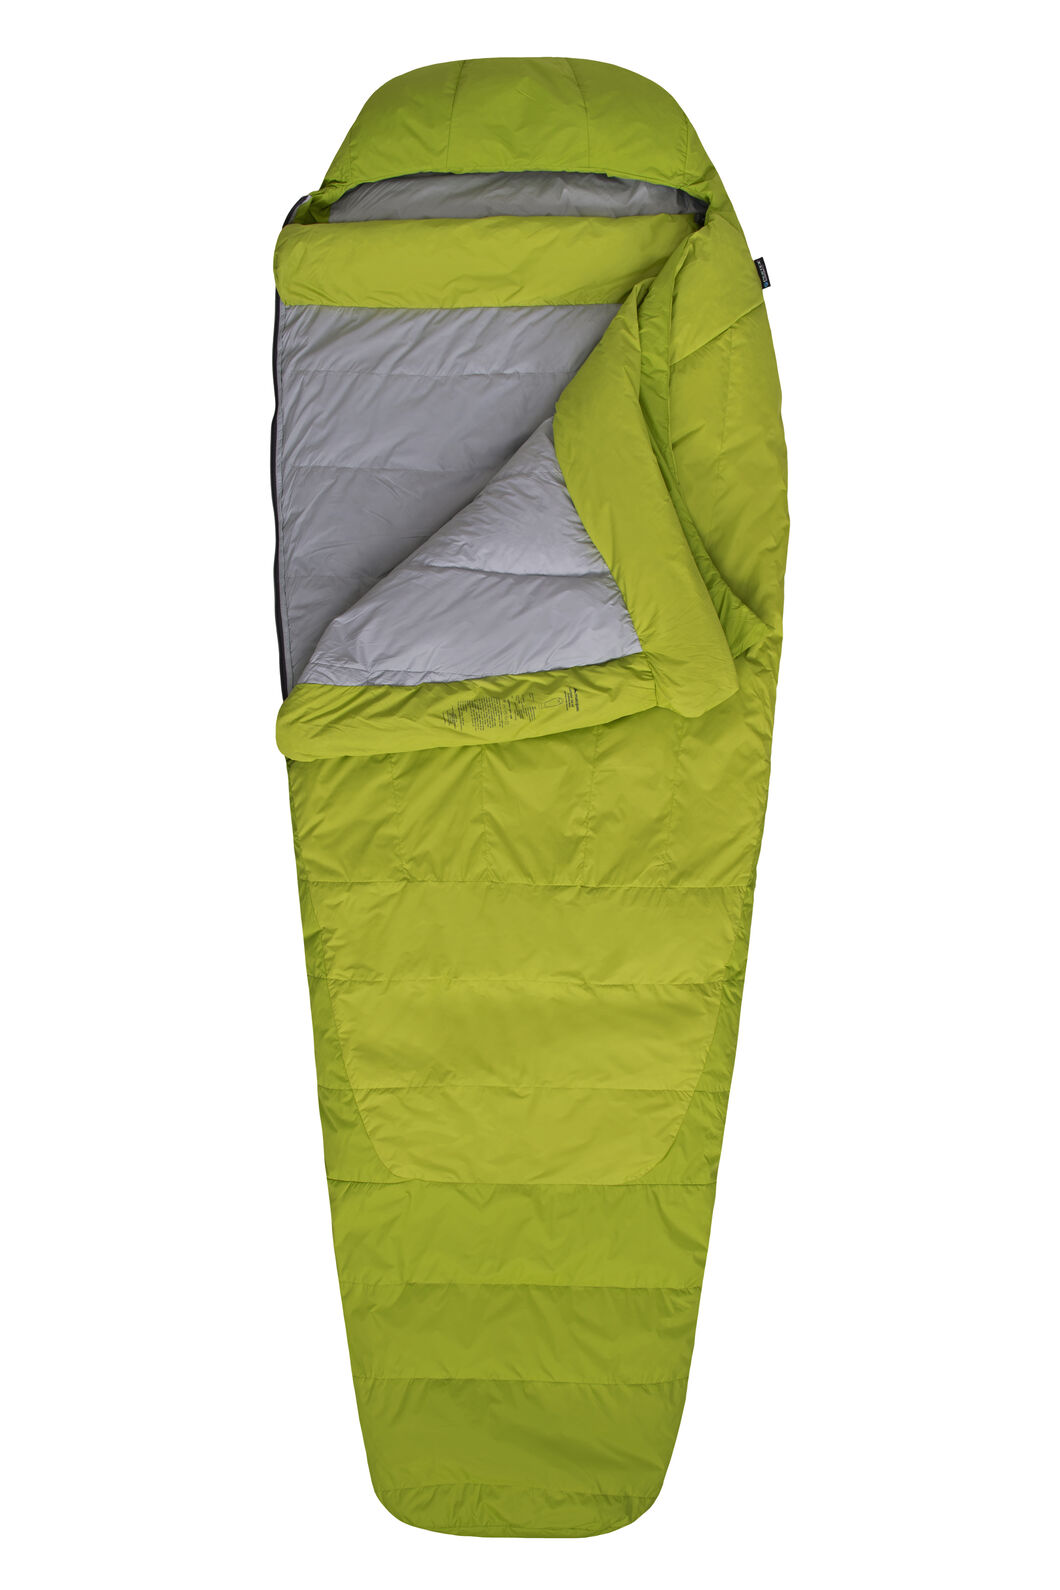 Macpac Latitude XP Goose Down 700 Sleeping Bag - Standard, Tender Shoots, hi-res